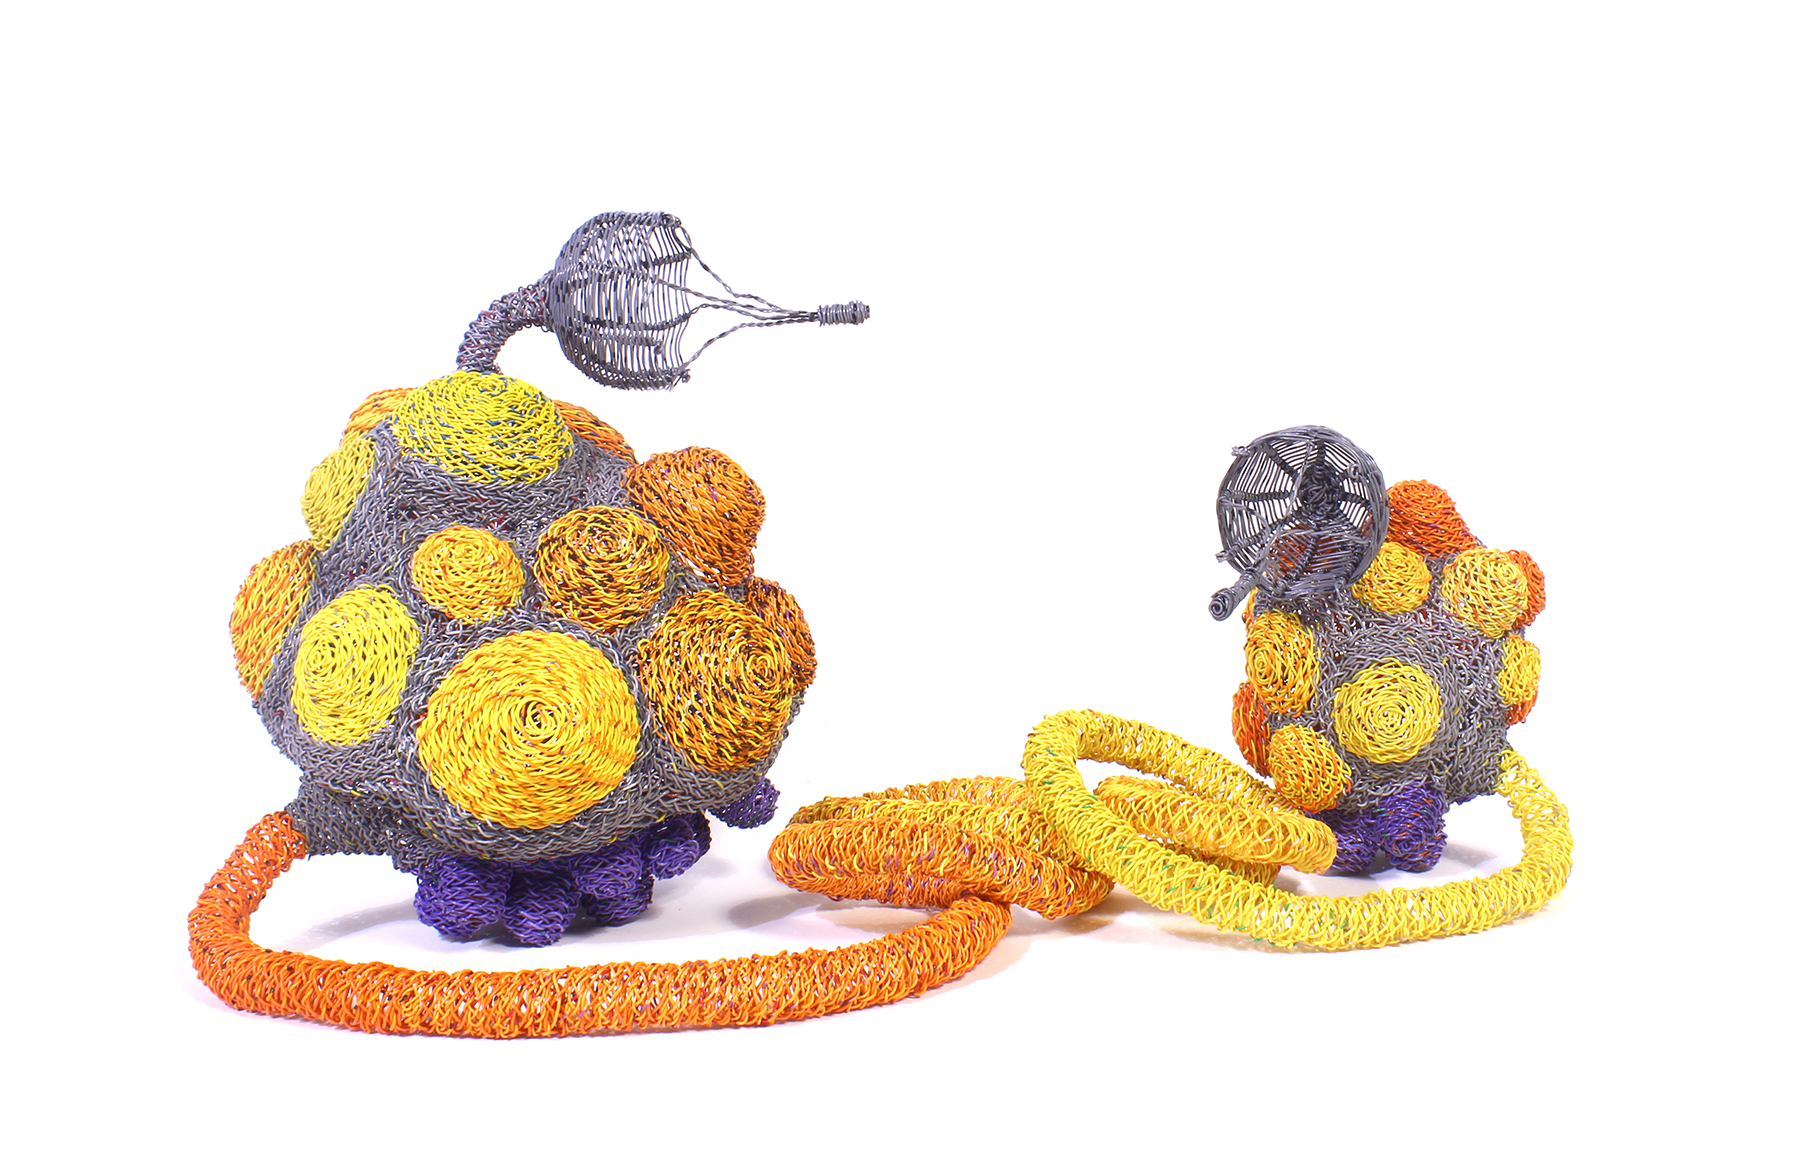 """Twyla Exner, Things 13 & 14 (Tethered), 13: 12""""x8""""x6"""" / 30x20x15cm 